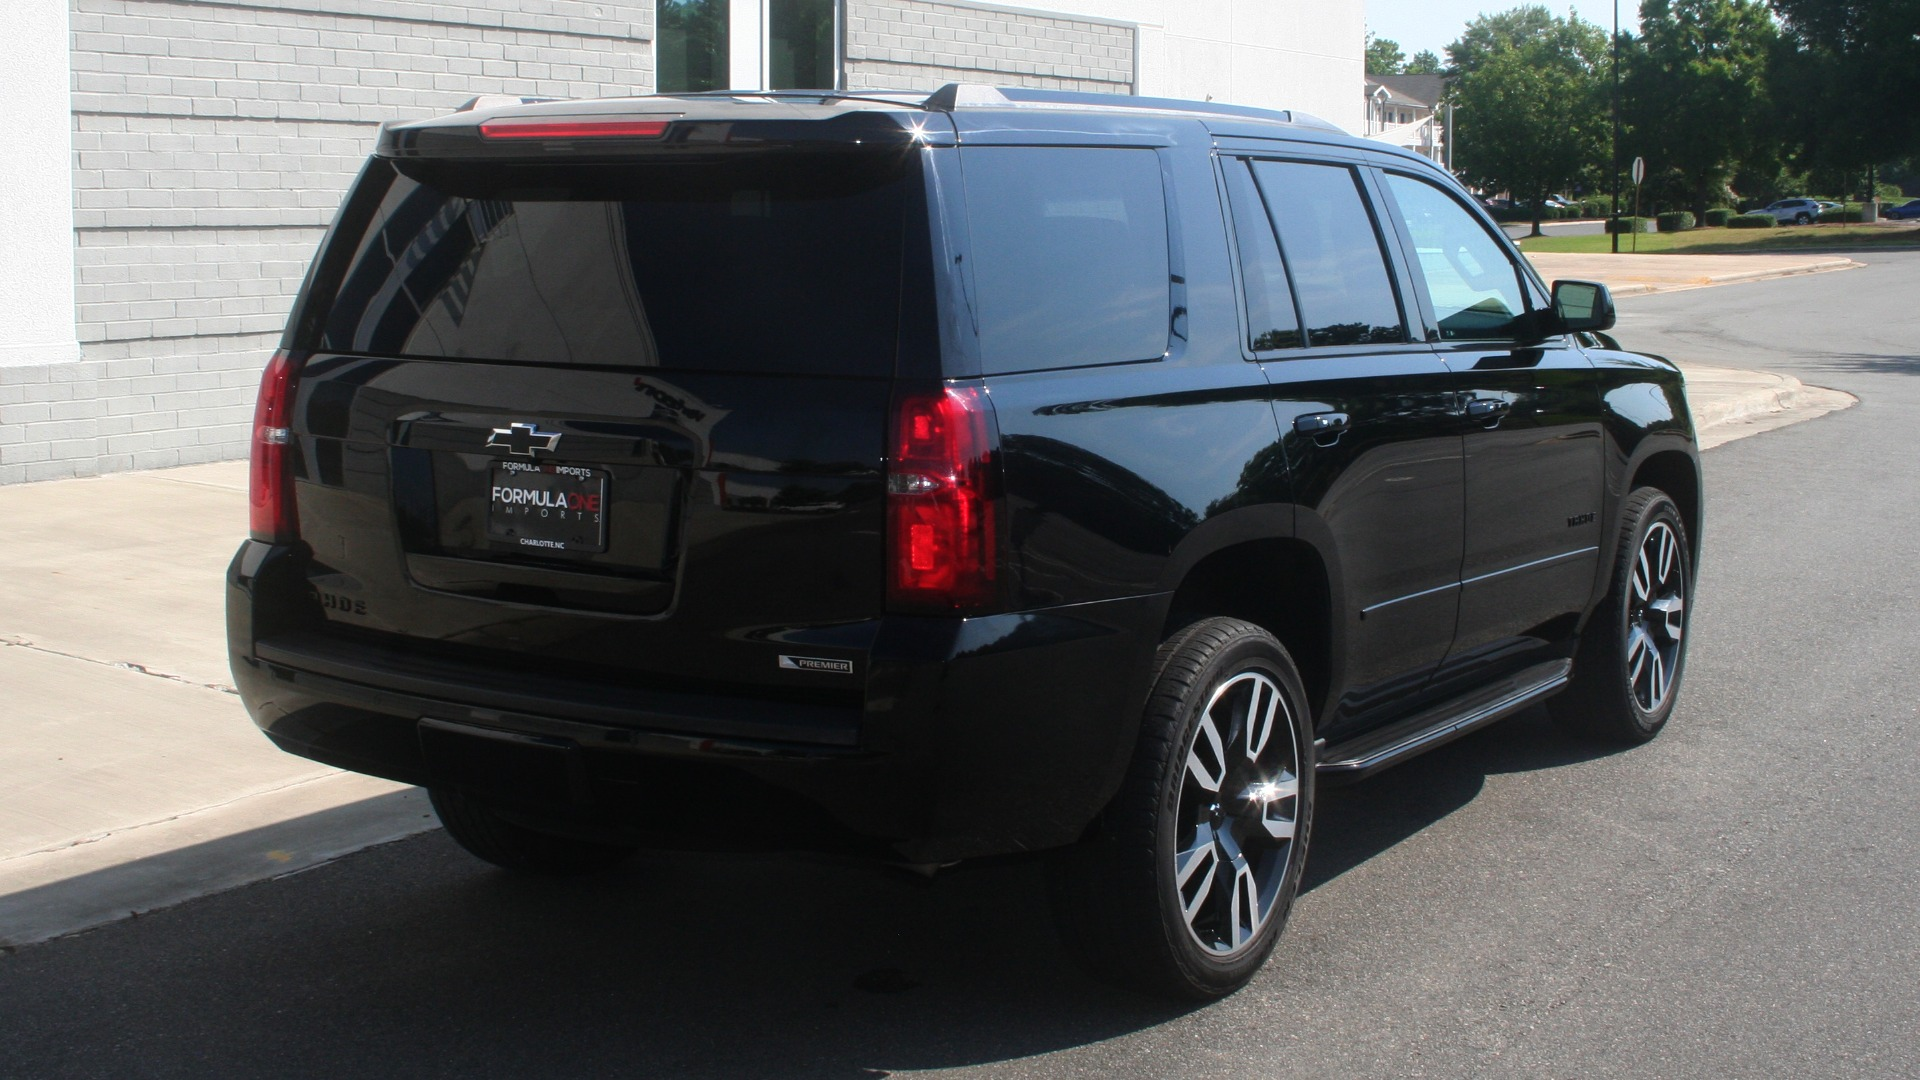 Used 2018 Chevrolet TAHOE PREMIER RST / 4X4 / NAV / BOSE / SUNROOF / 3-ROW / REARVIEW for sale $65,995 at Formula Imports in Charlotte NC 28227 2